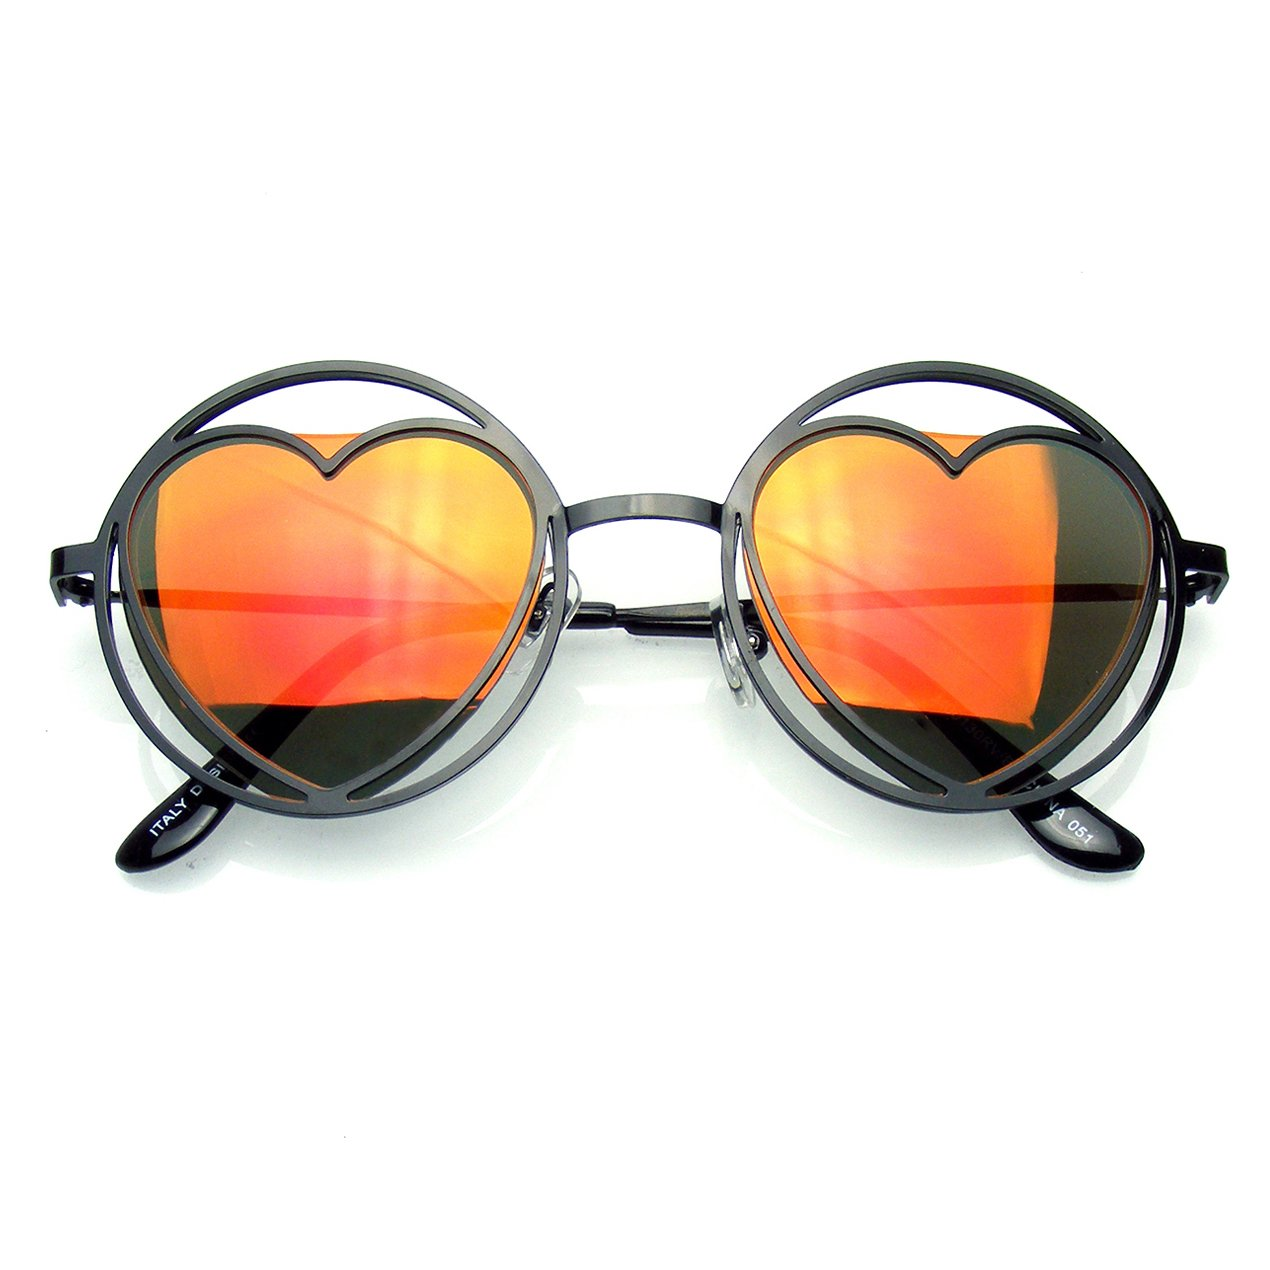 89397d2379 Amazon.com  Womens Round Metal Heart Shape Hippie Circle Sunglasses  (Black)  Clothing